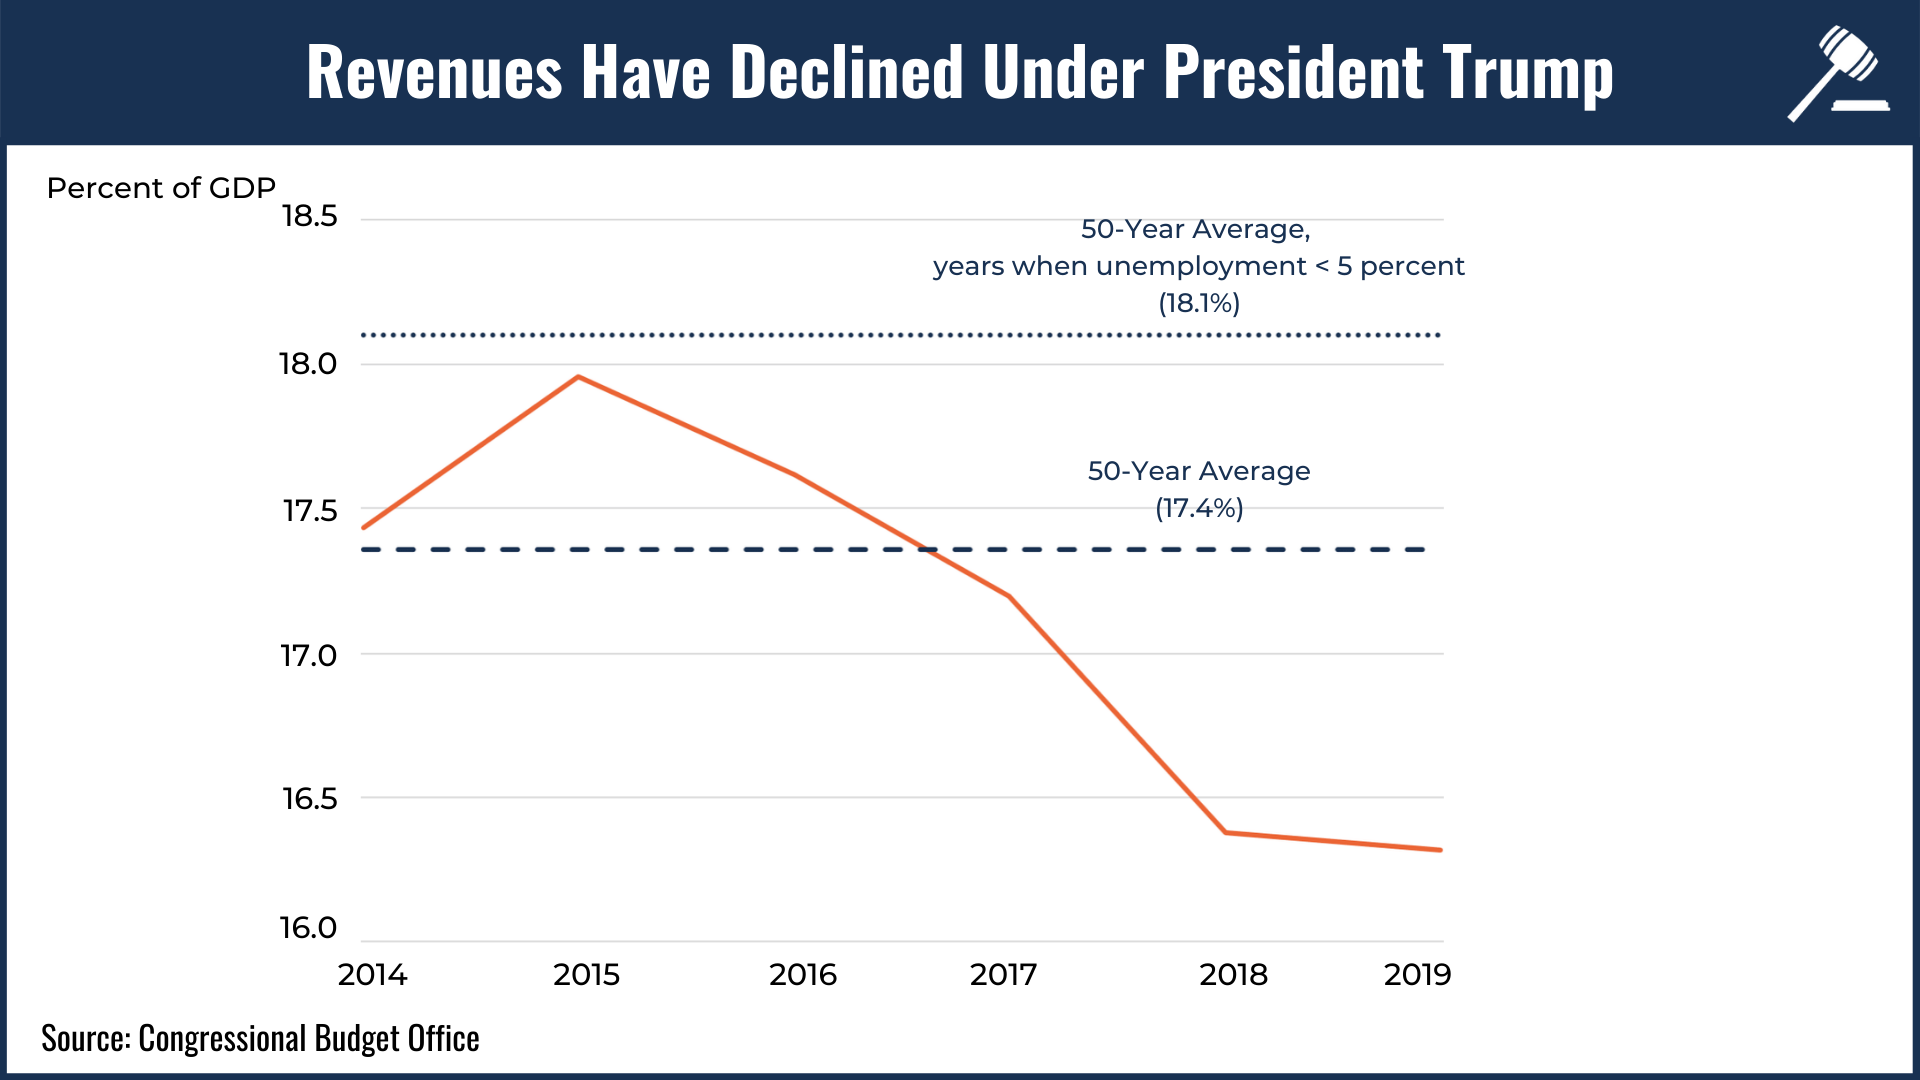 A line graph showing how revenues have declined under President Trump.